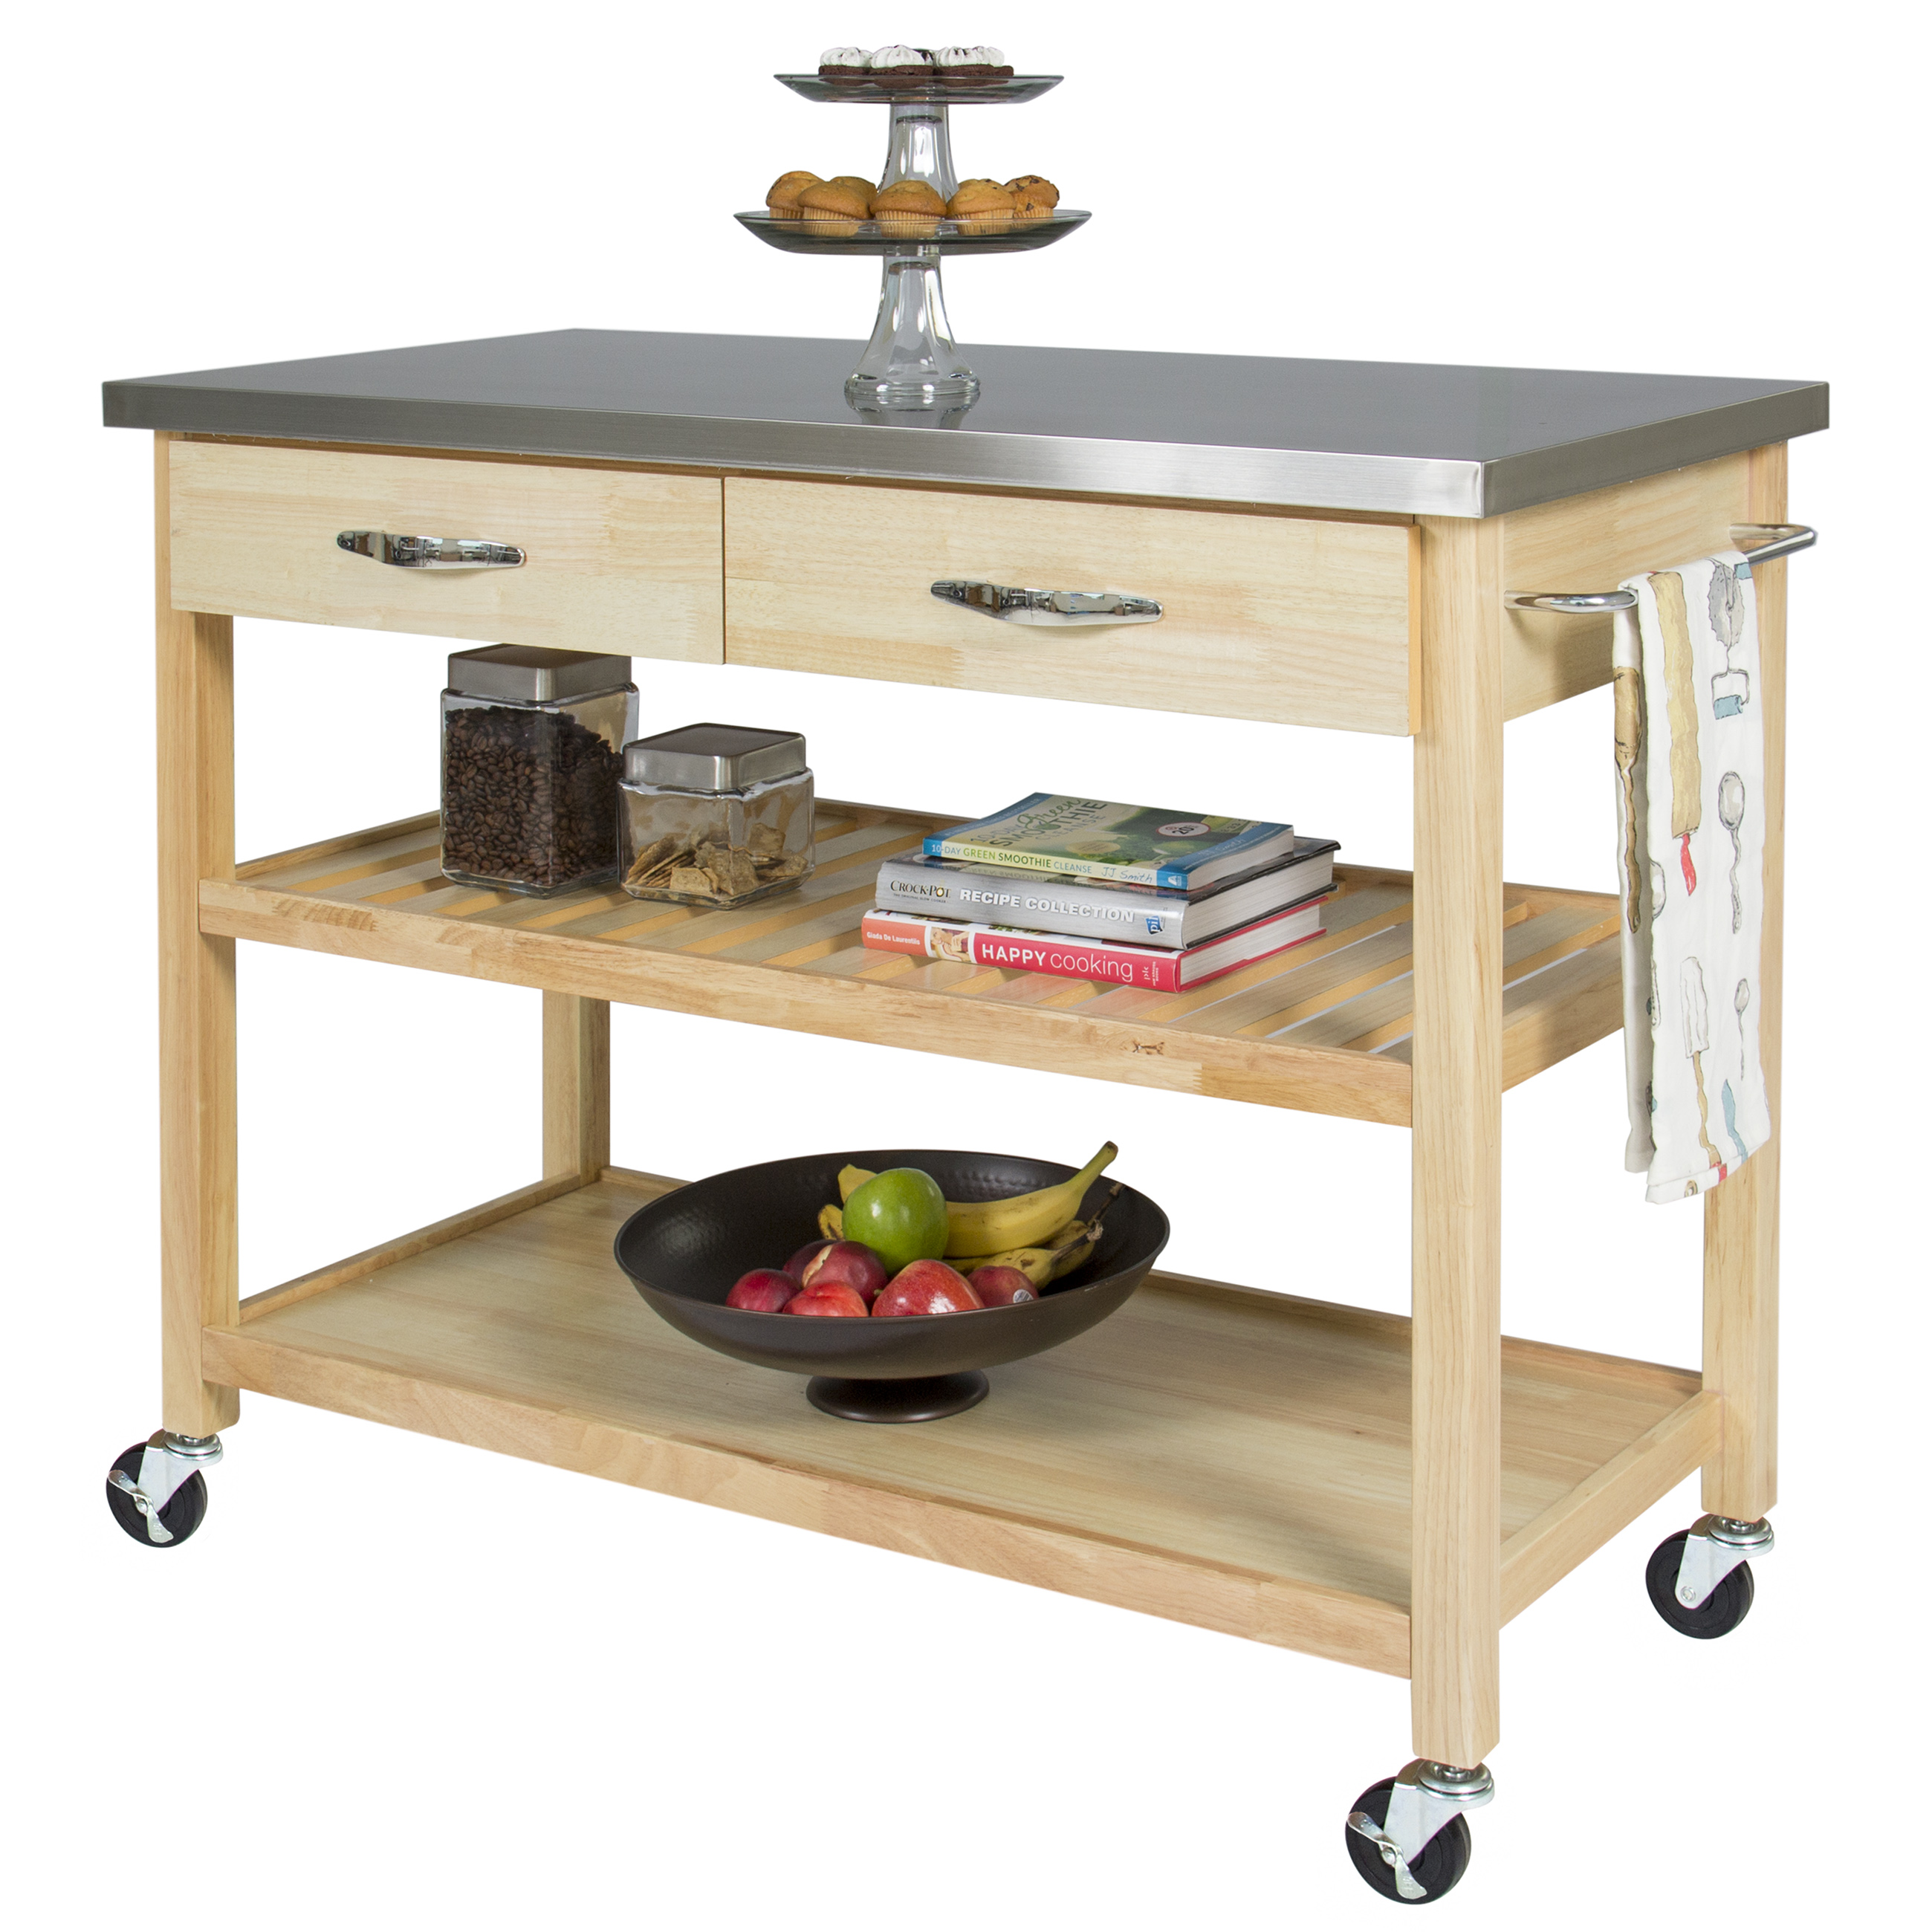 Best Choice Products Natural Wood Mobile Kitchen Island Utility